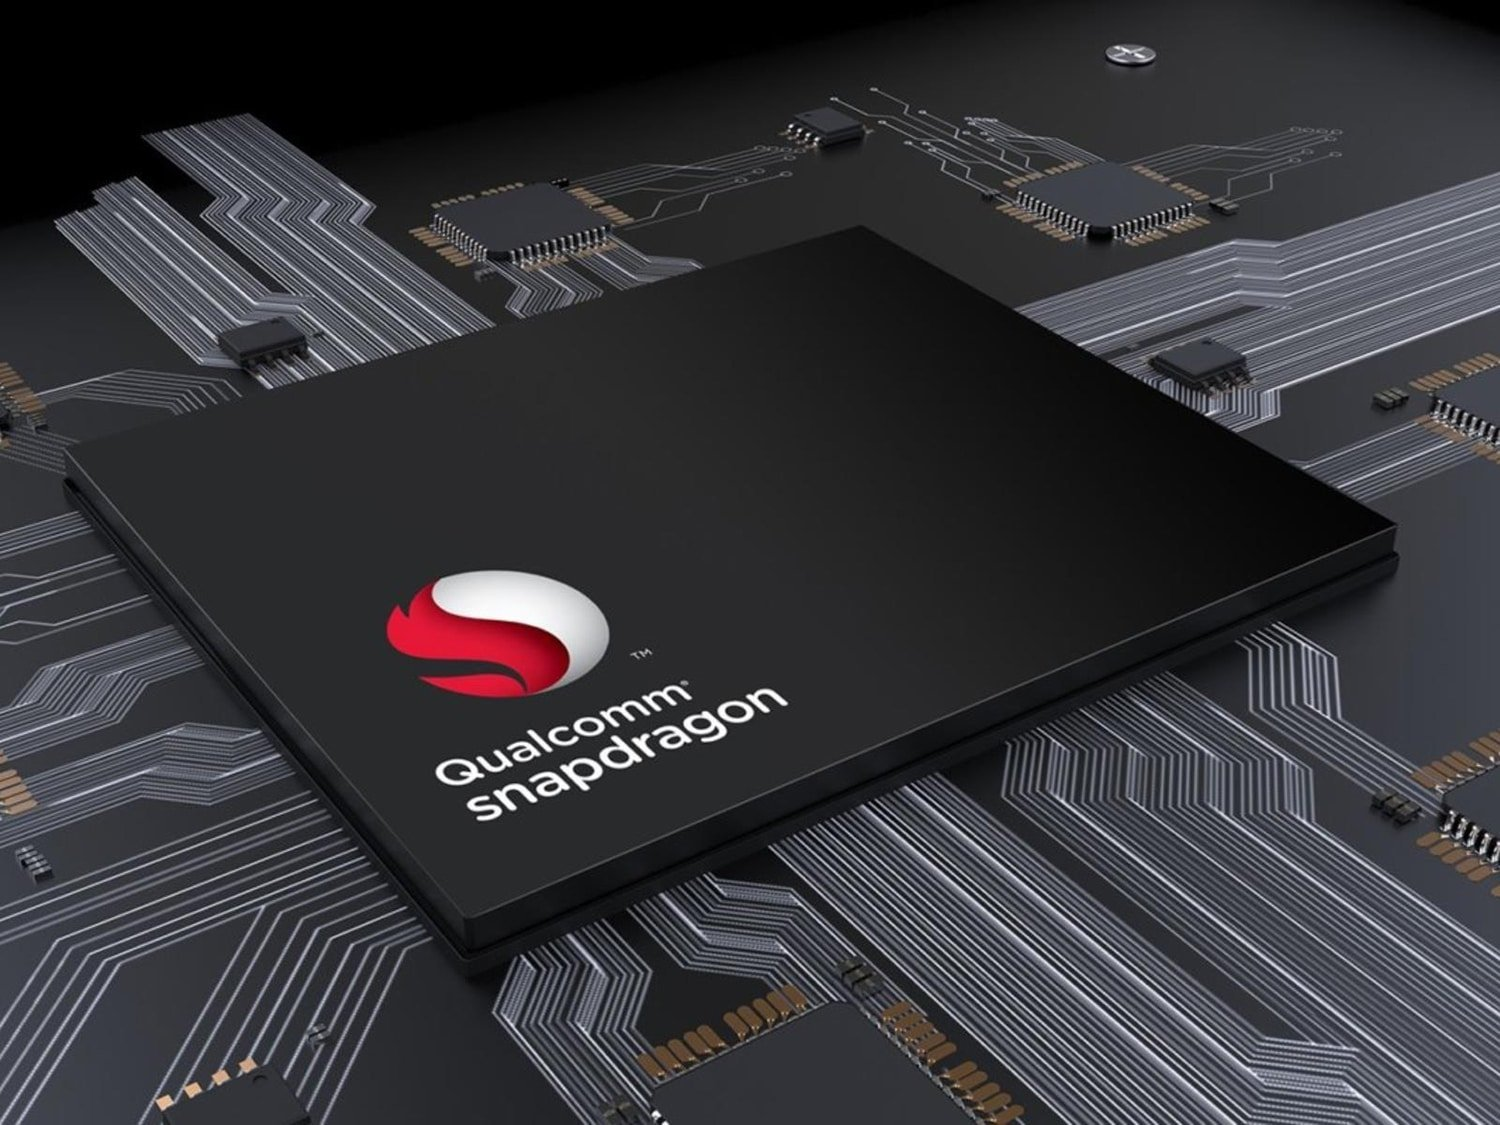 Qualcomm chercherait à développer sa propre alternative à l'Apple M1